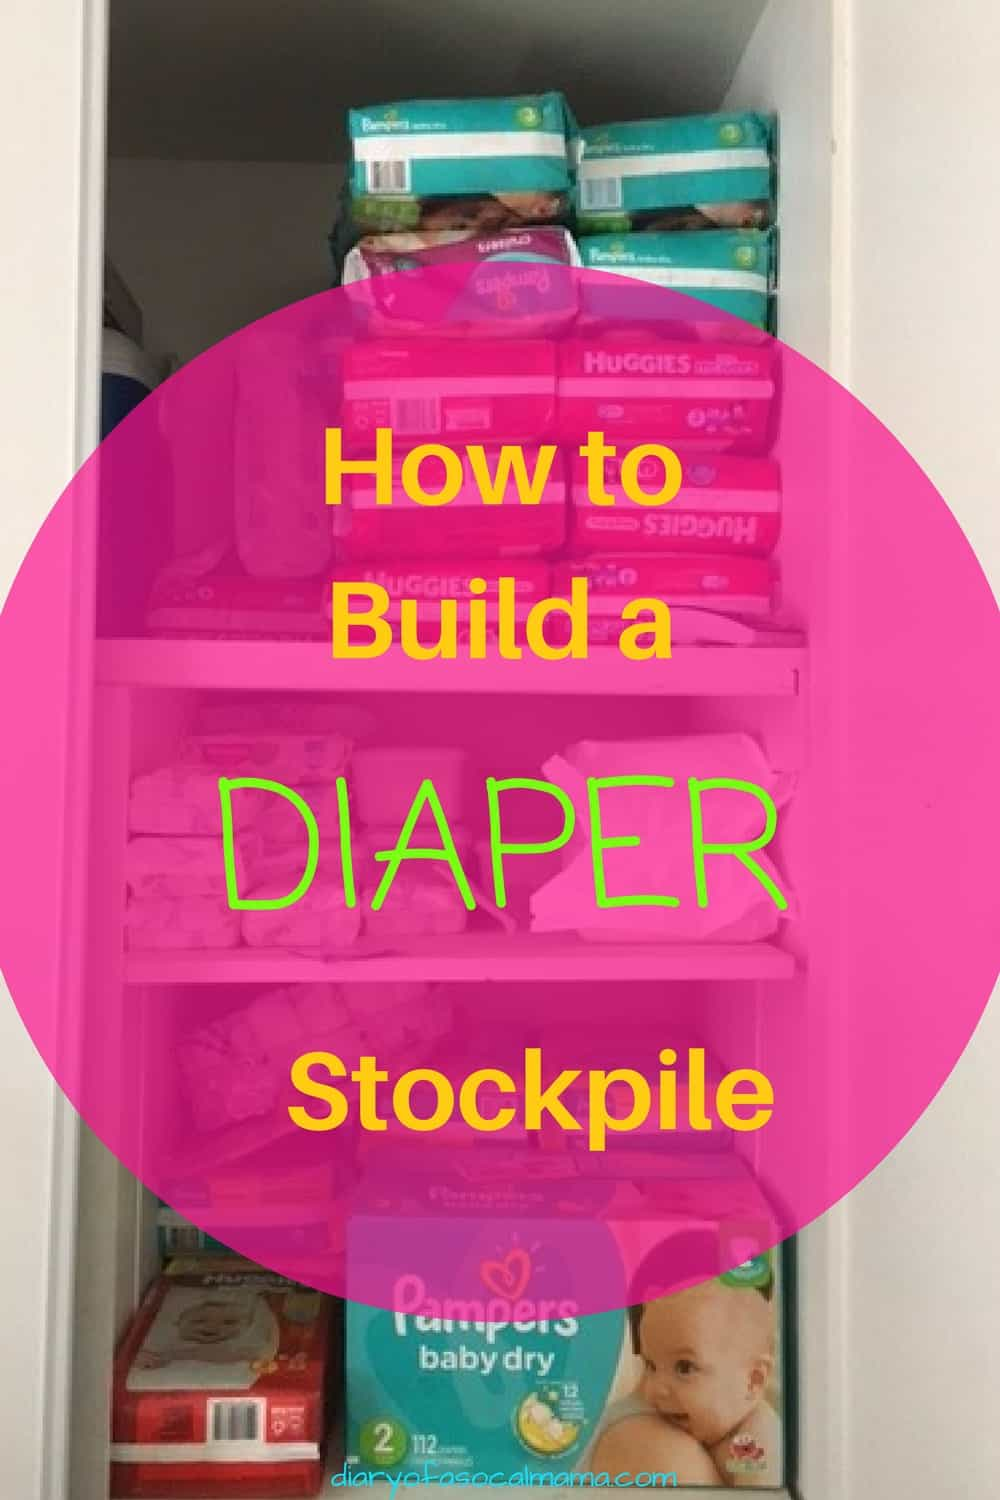 Baby | Diapers | Diaper Stockpile